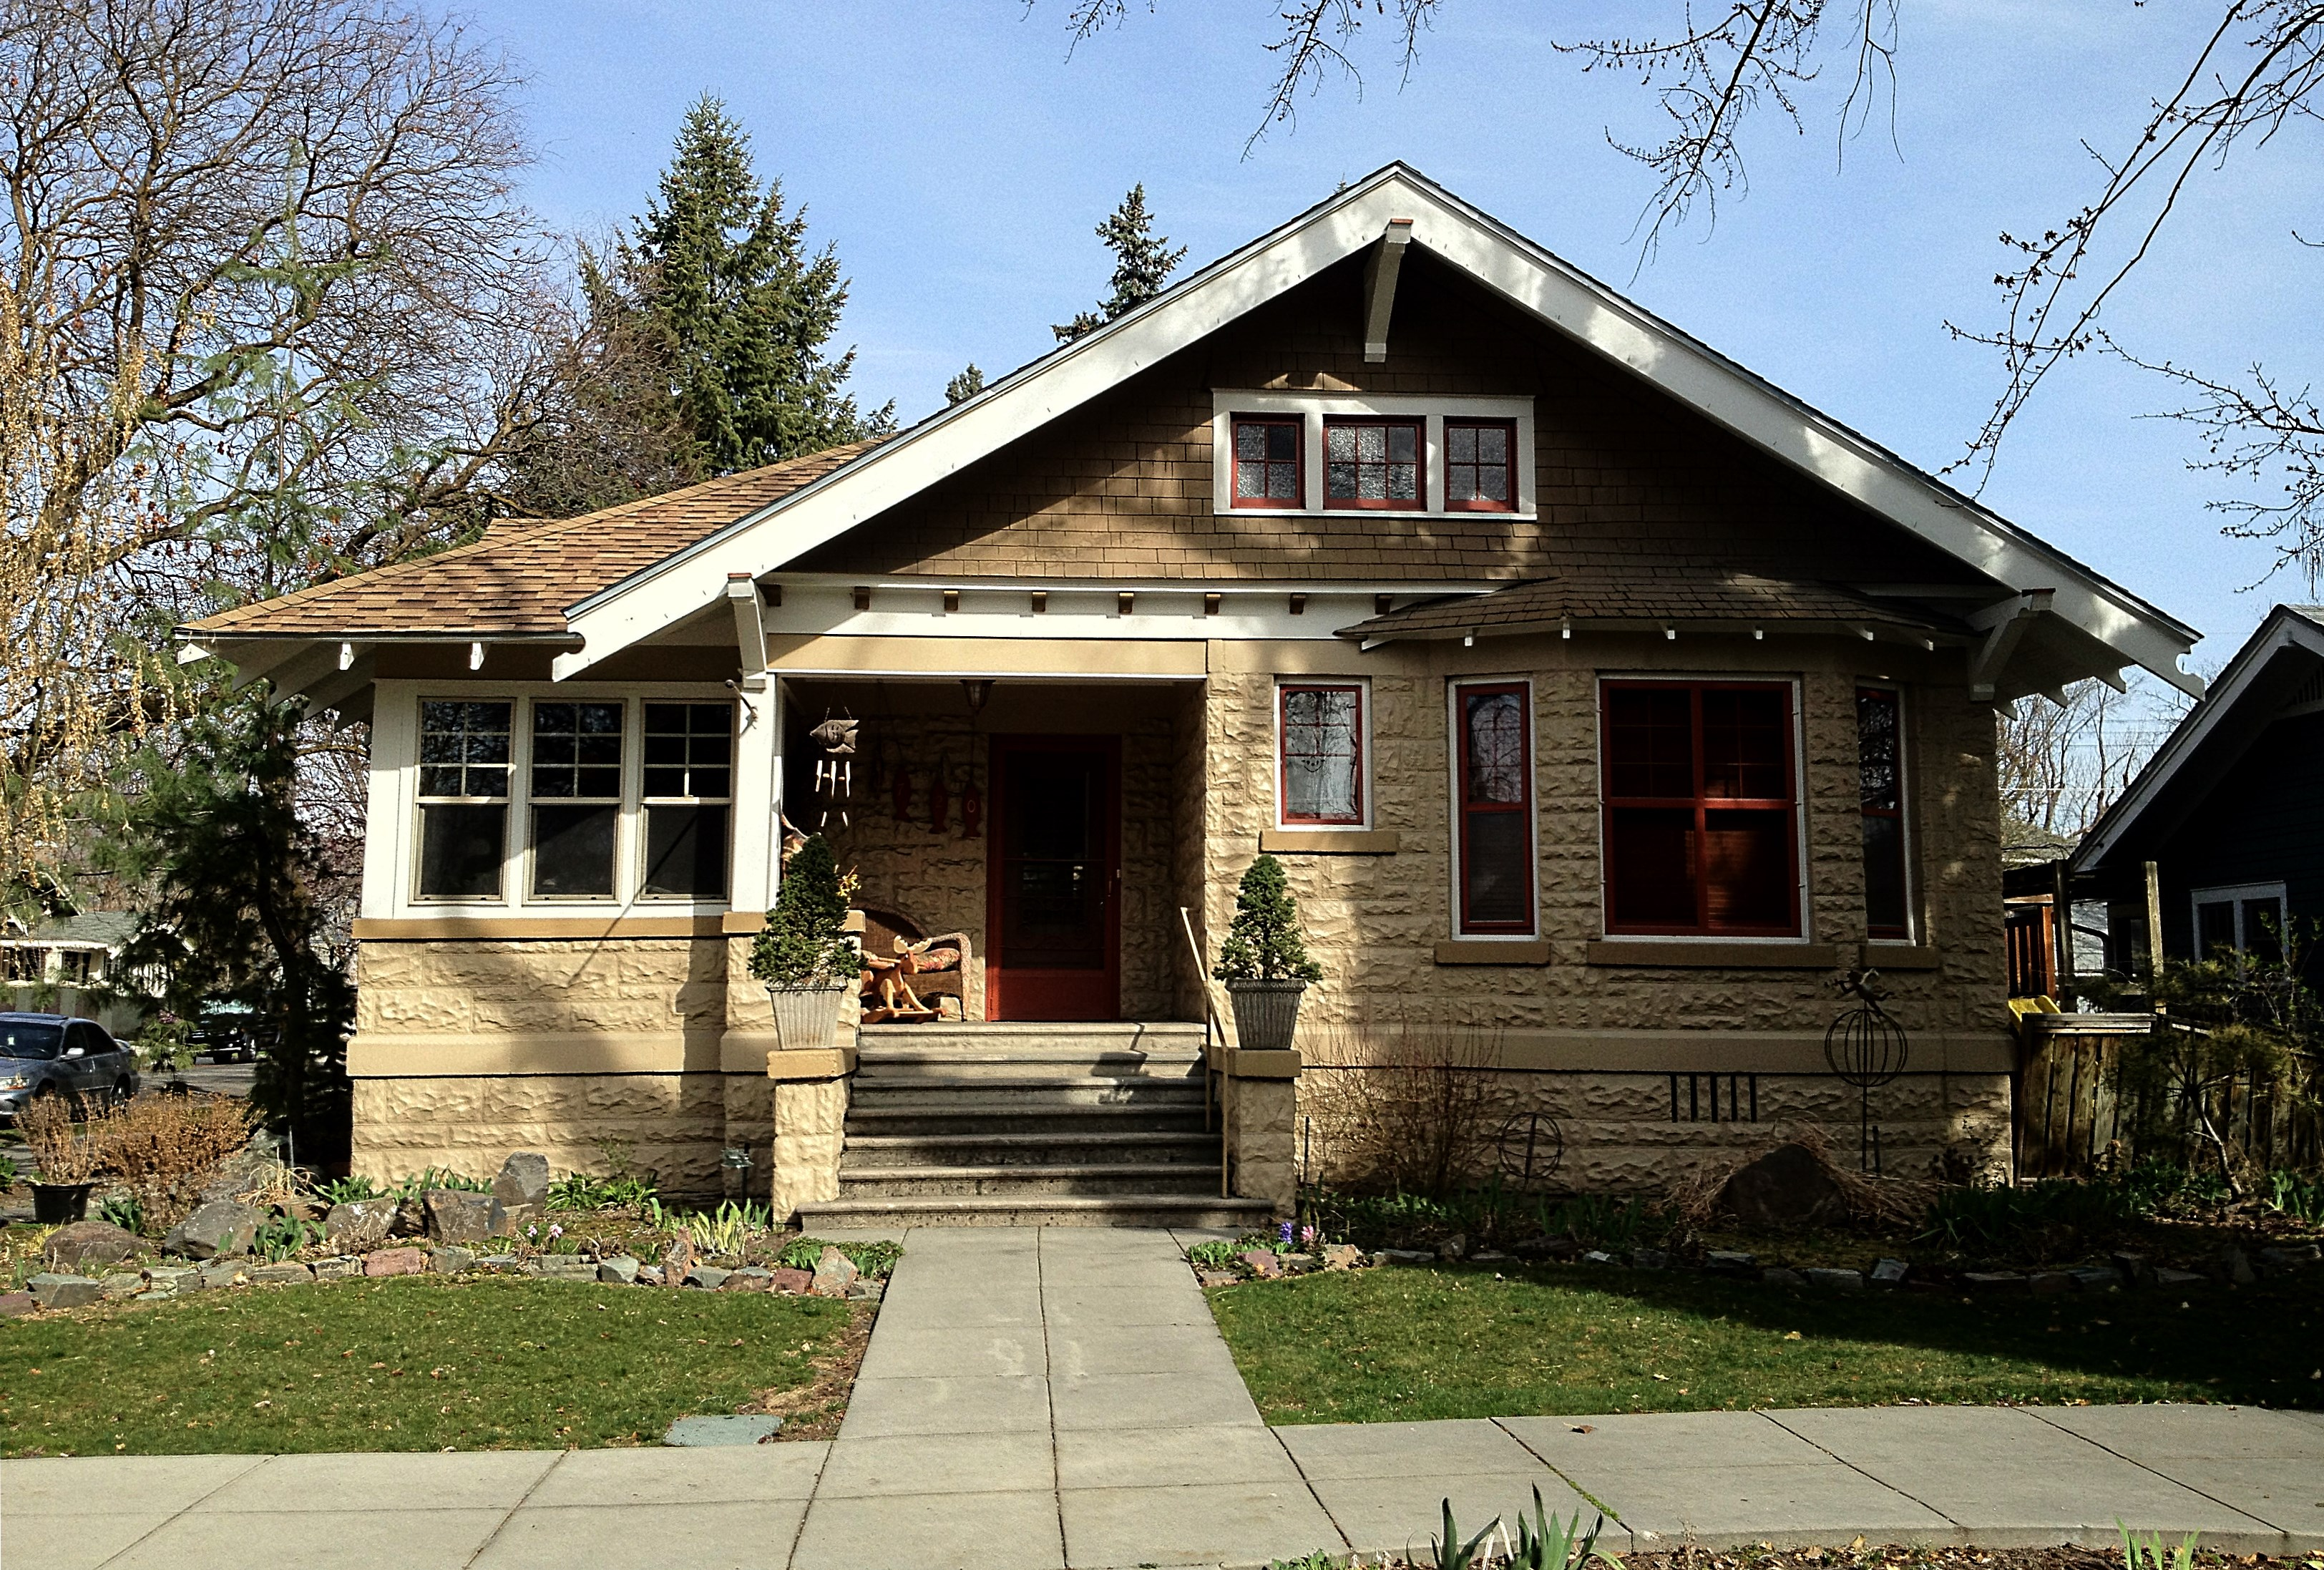 Photo Essay The Eclectic Bungalows of Boise Idaho The Craftsman